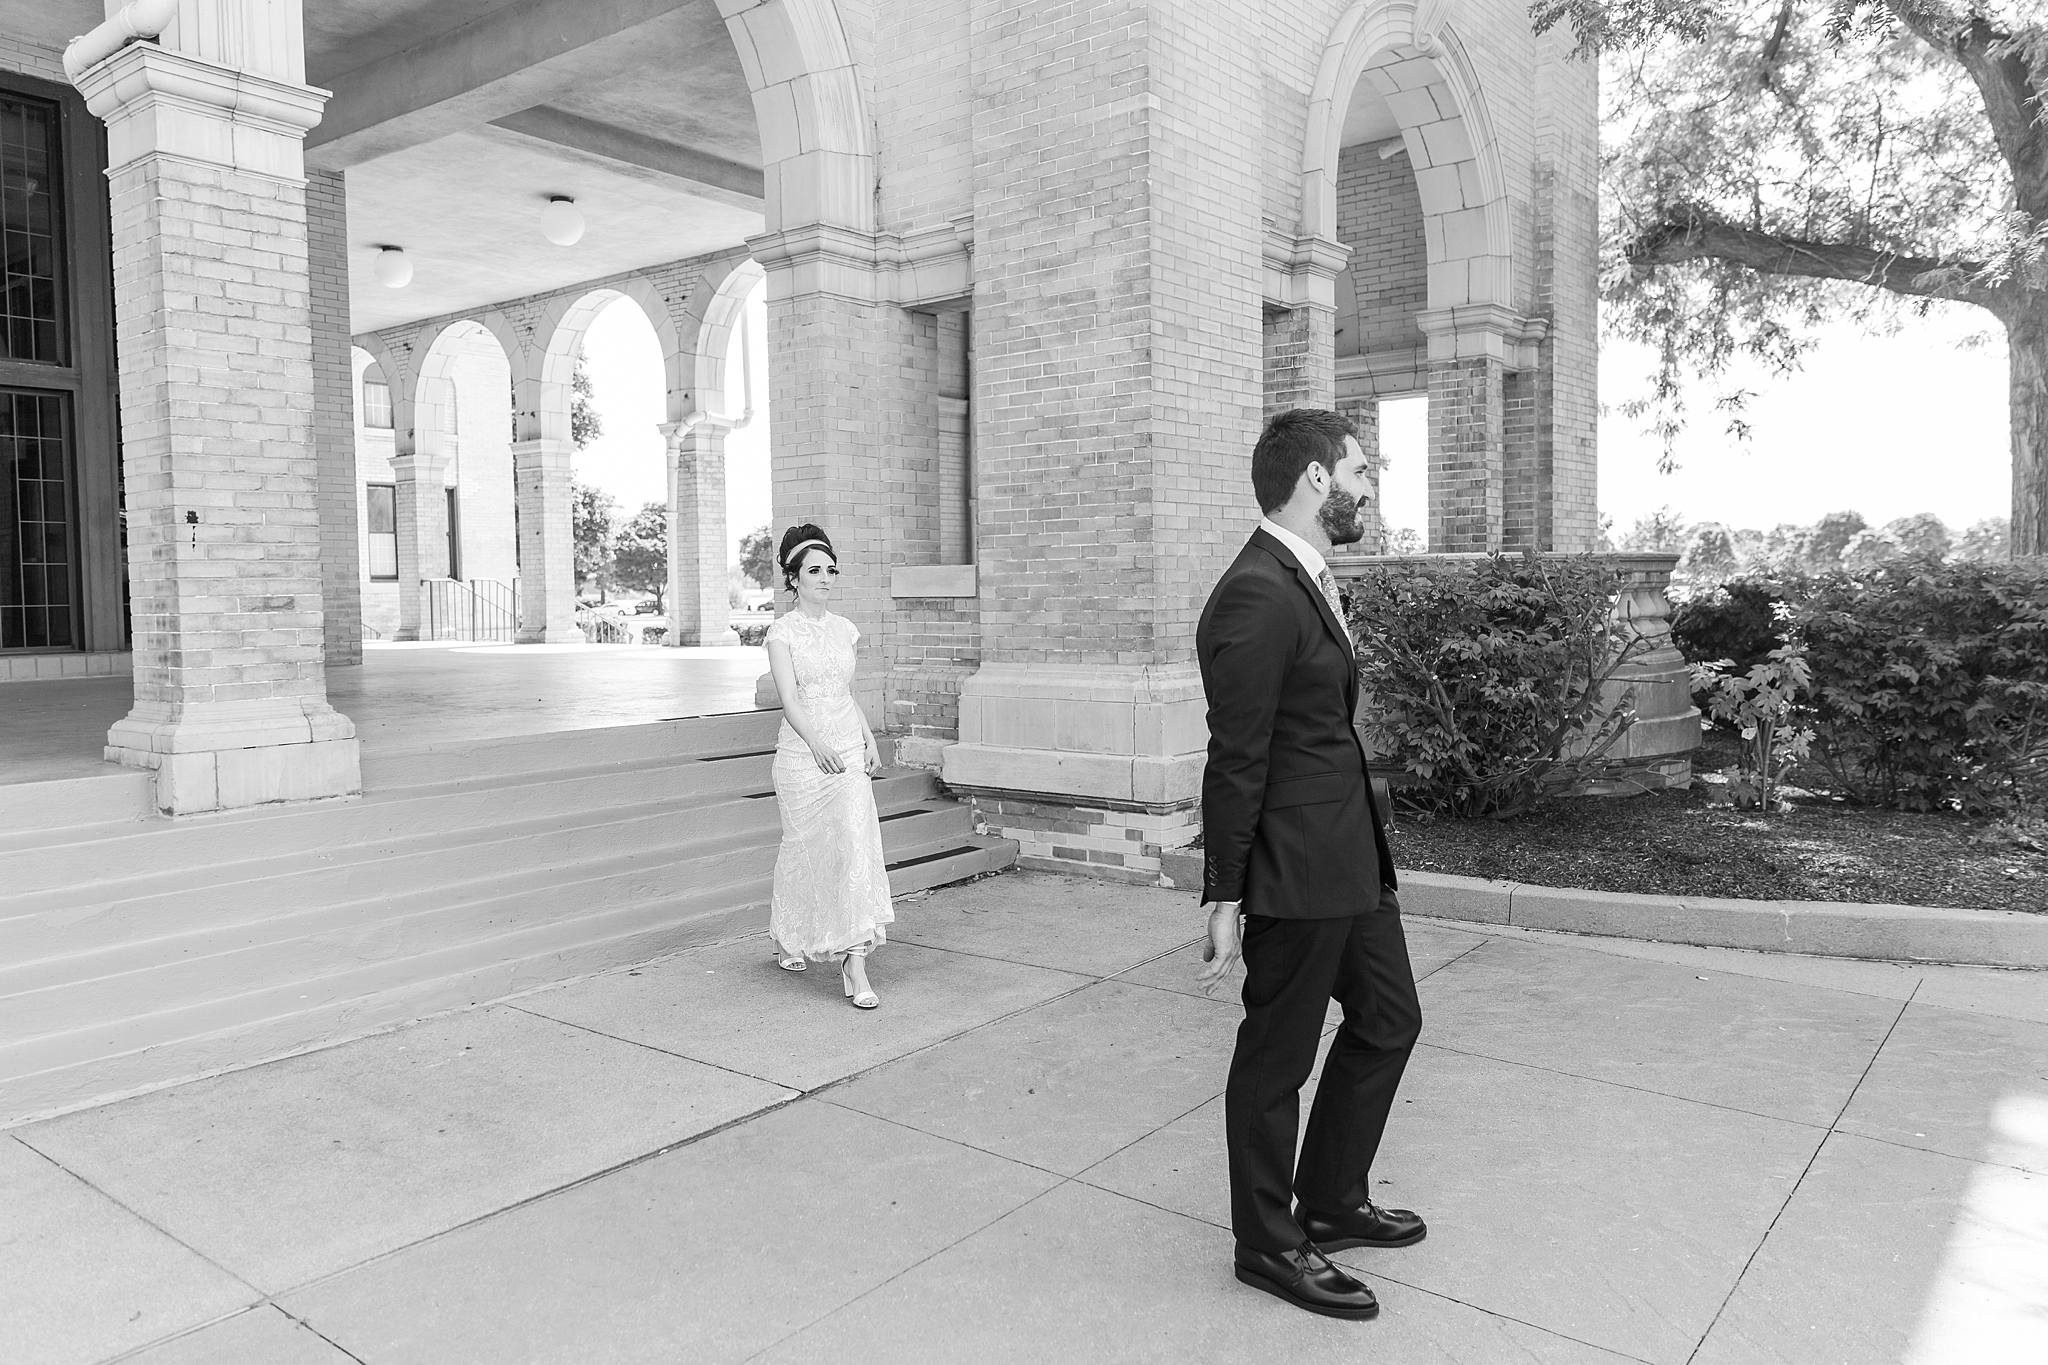 belle-isle-casino-modern-artictic-wedding-photography-in-detroit-michigan-by-courtney-carolyn-photography_0006.jpg